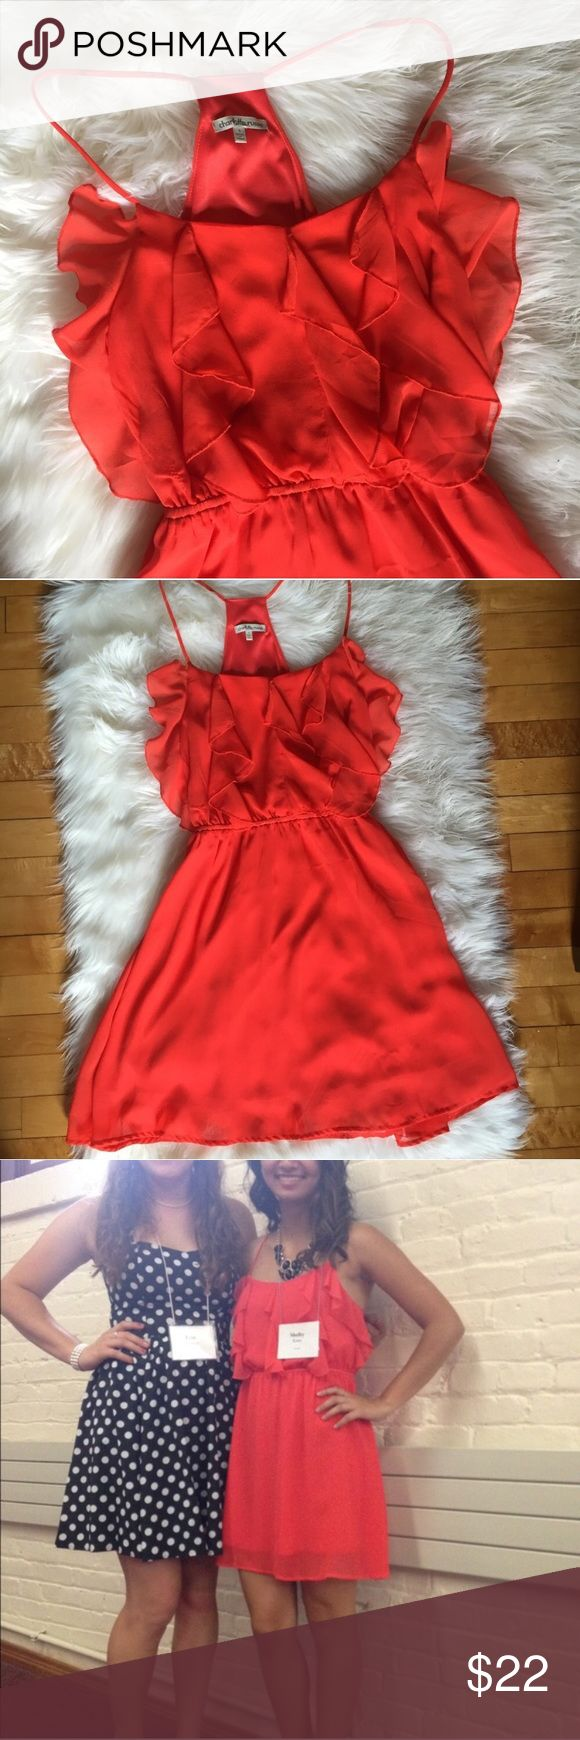 Charlotte Russe Front Ruffle Dress This dress is so cute! Ruffle on the front with thin spaghetti straps. Bright spring orange. Only worn a few times. Bundle two items to save! Offers welcome. Charlotte Russe Dresses Mini